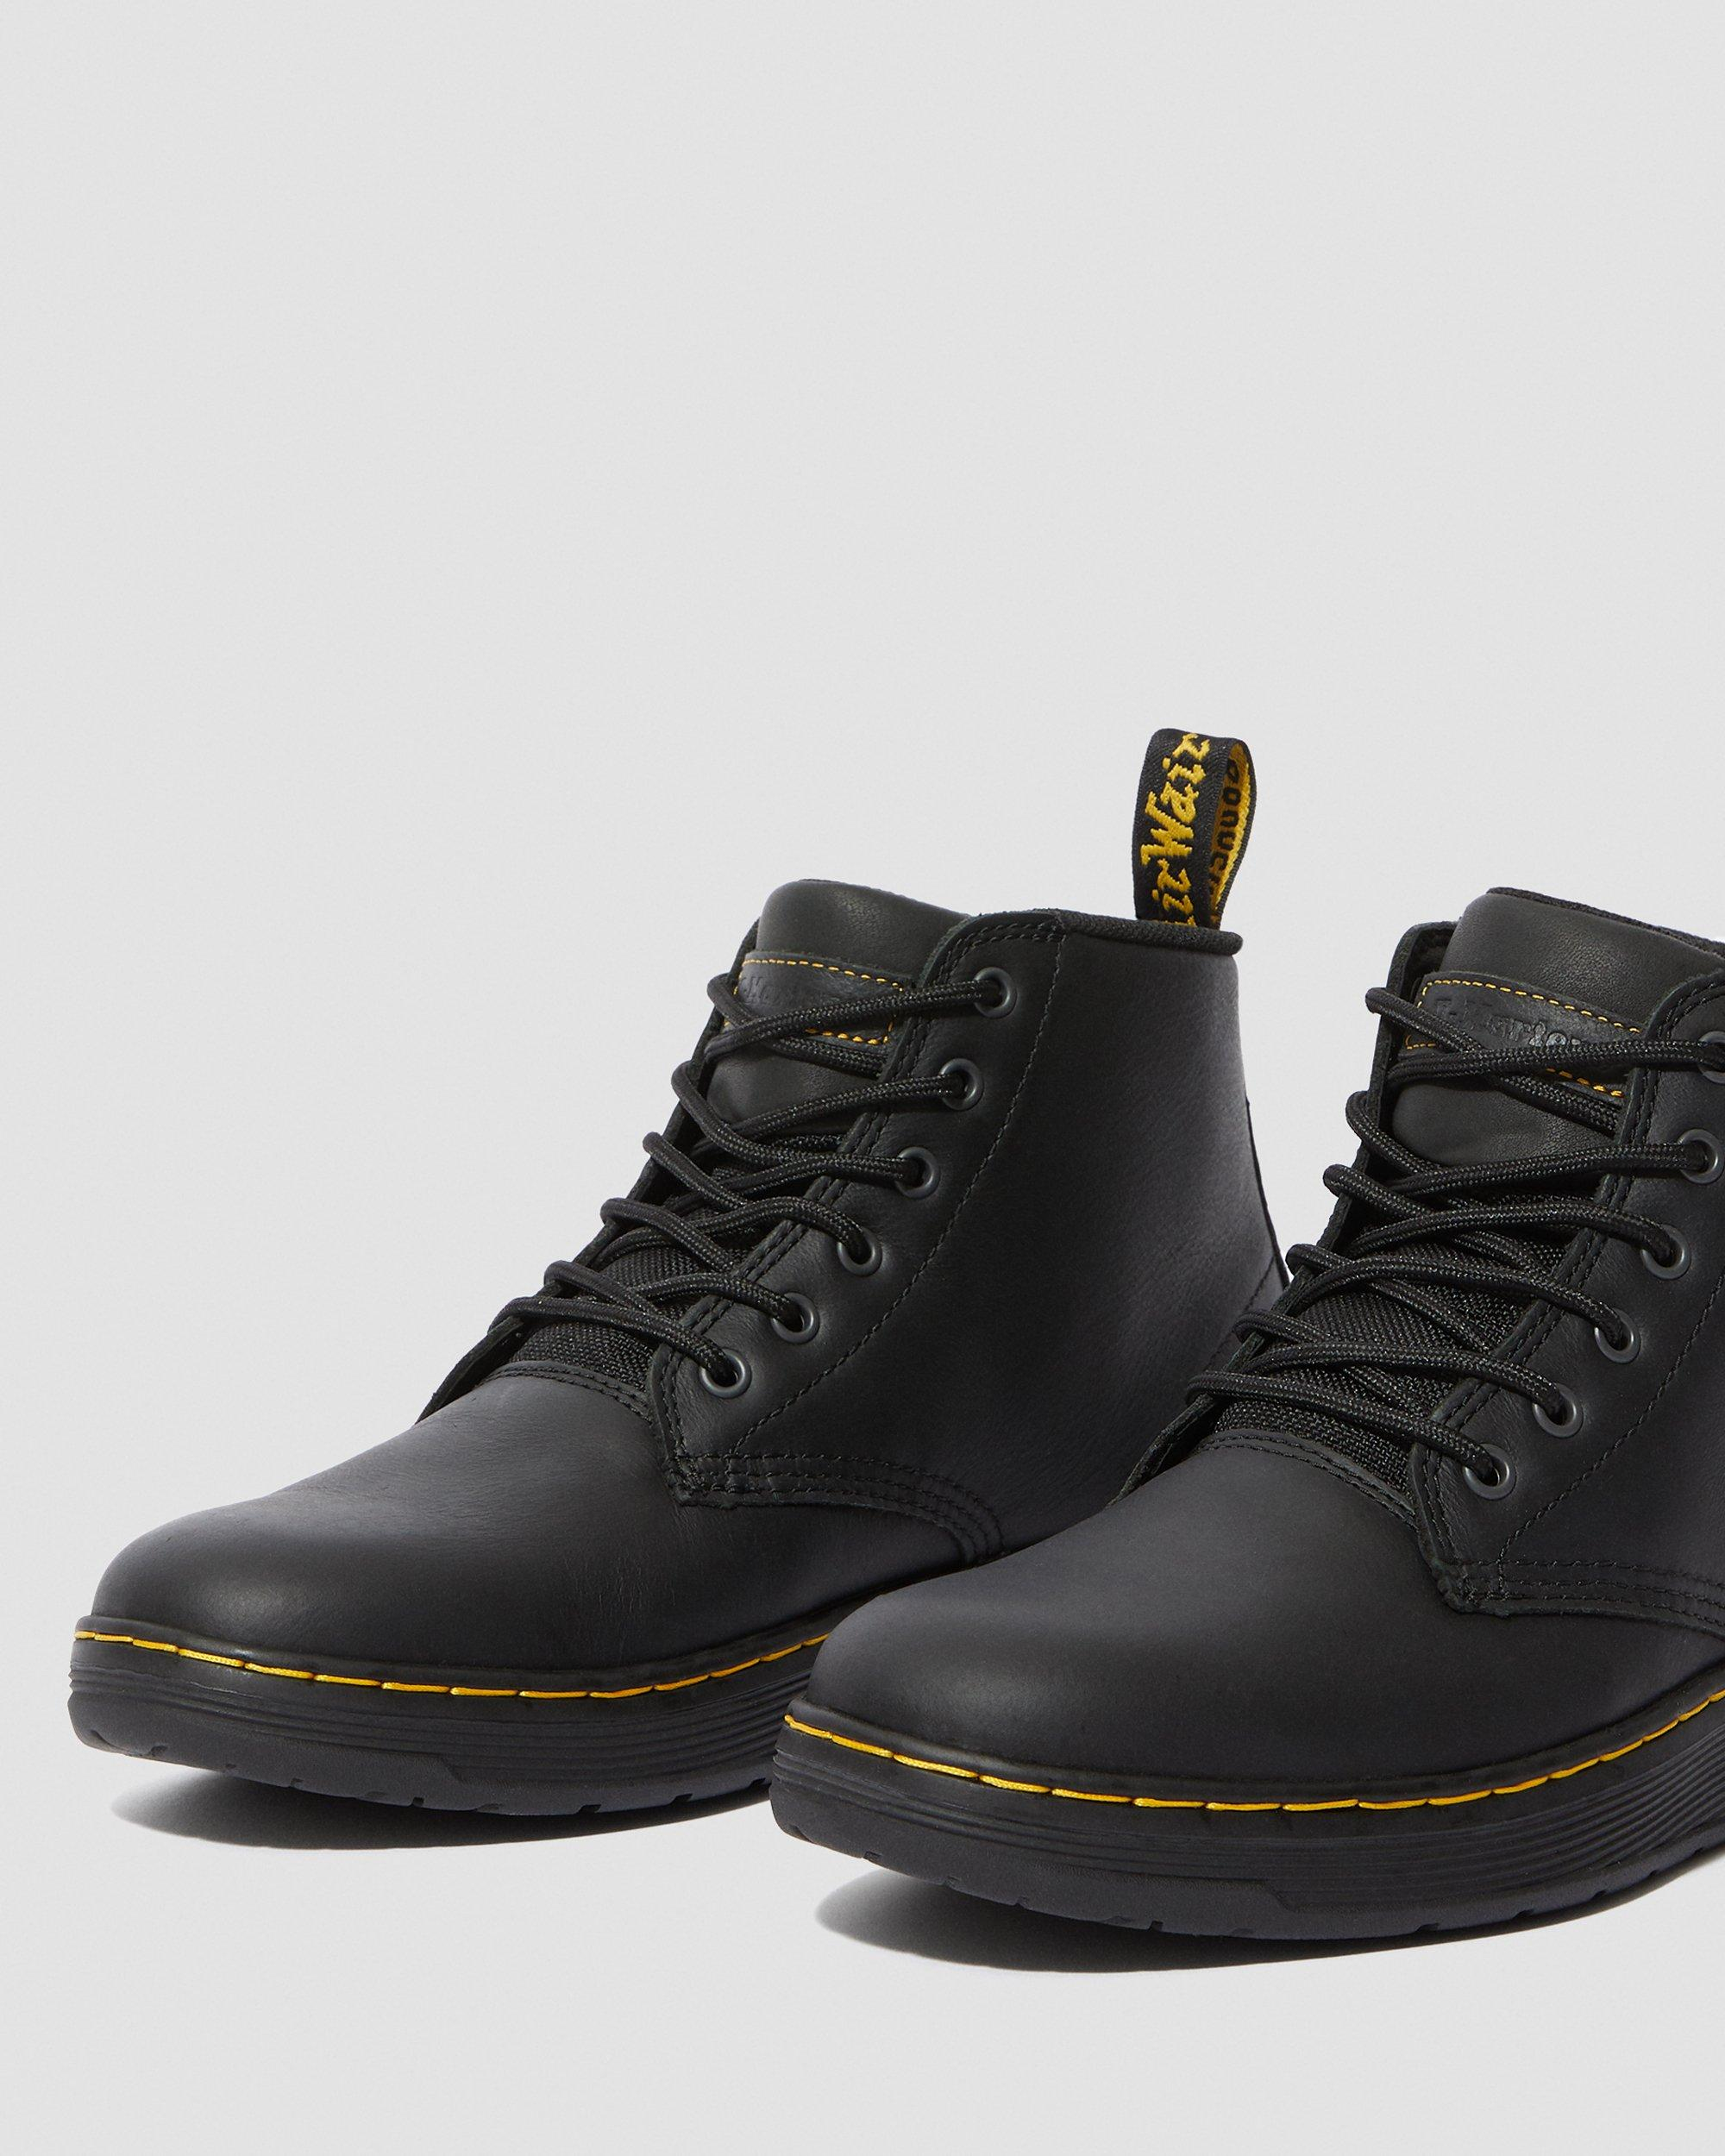 AMWELL SLIP RESISTANT LEATHER LACE UP